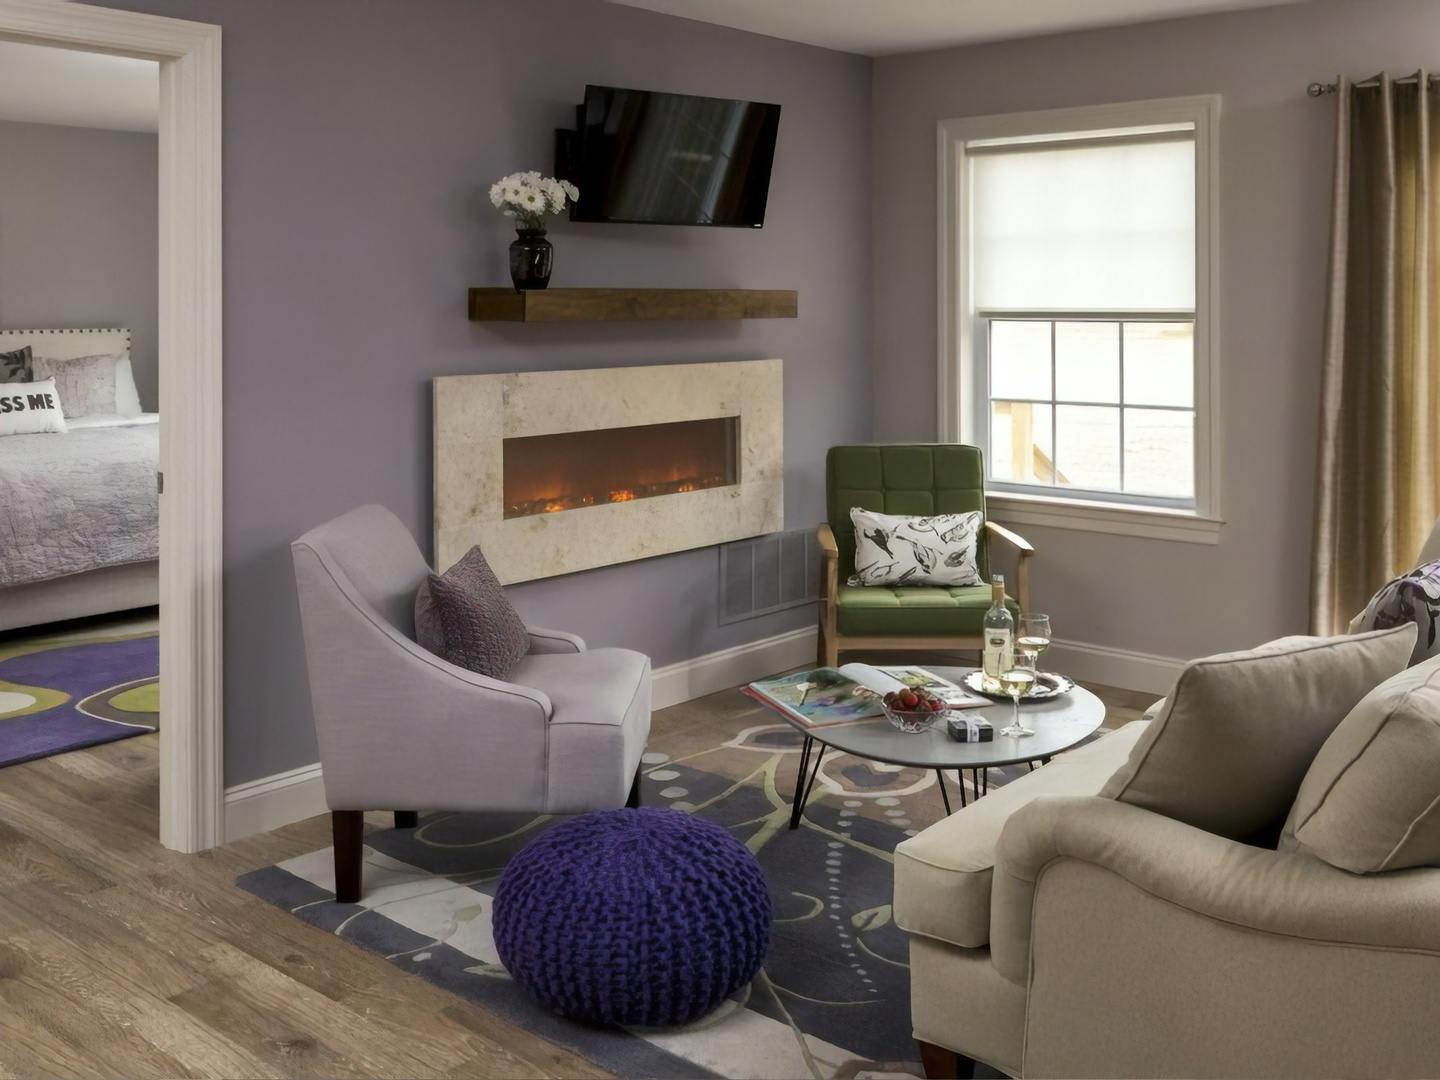 A living room filled with furniture and a window at Inn at Huntingfield Creek.